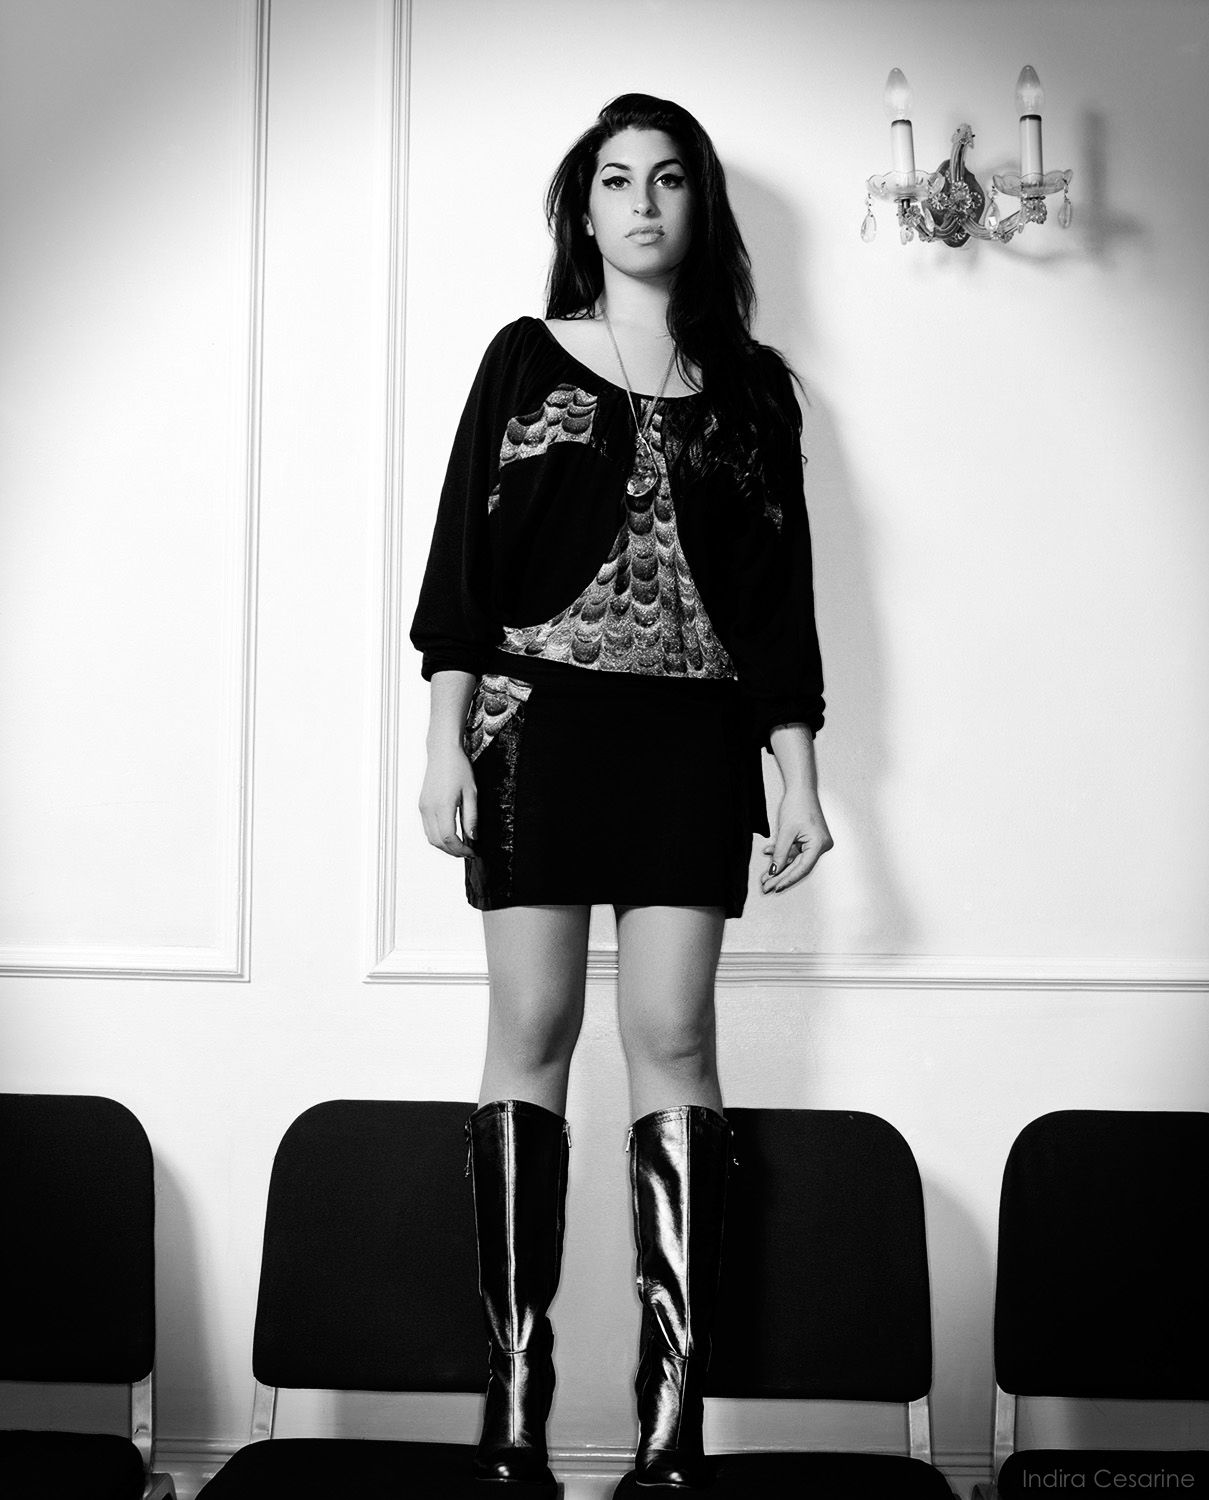 AMY-WINEHOUSE-Photography-by-Indira-Cesarine-004-BW-1.jpg